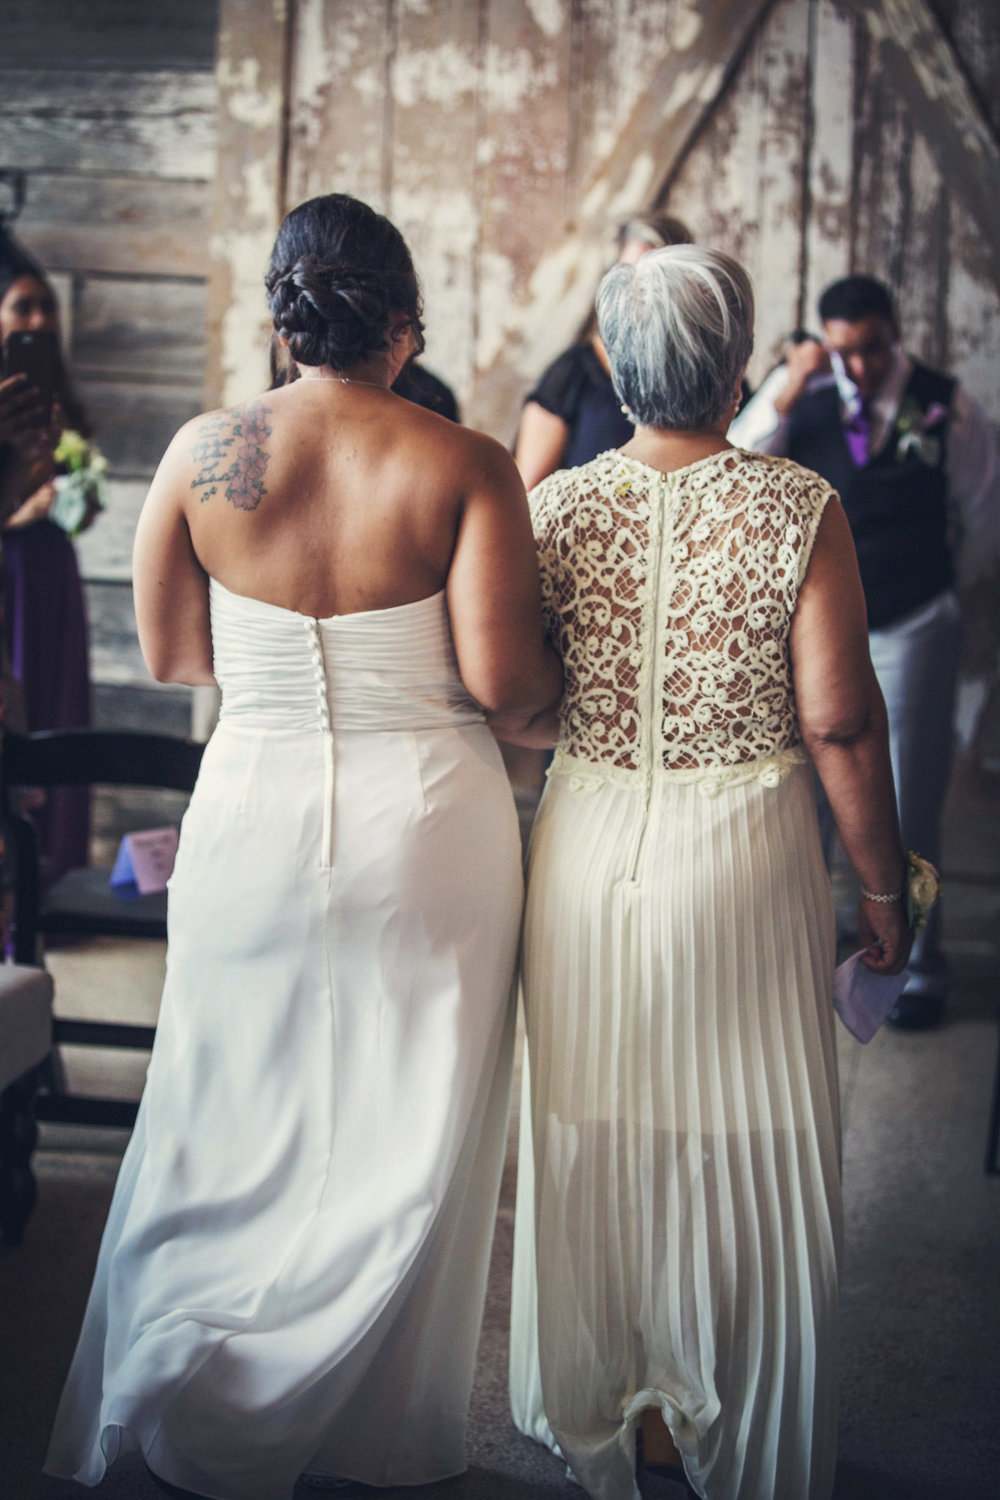 Kansas+City-Small+Wedding-Elope_Intimate_Ceremony_Mother's+Day_3.jpg